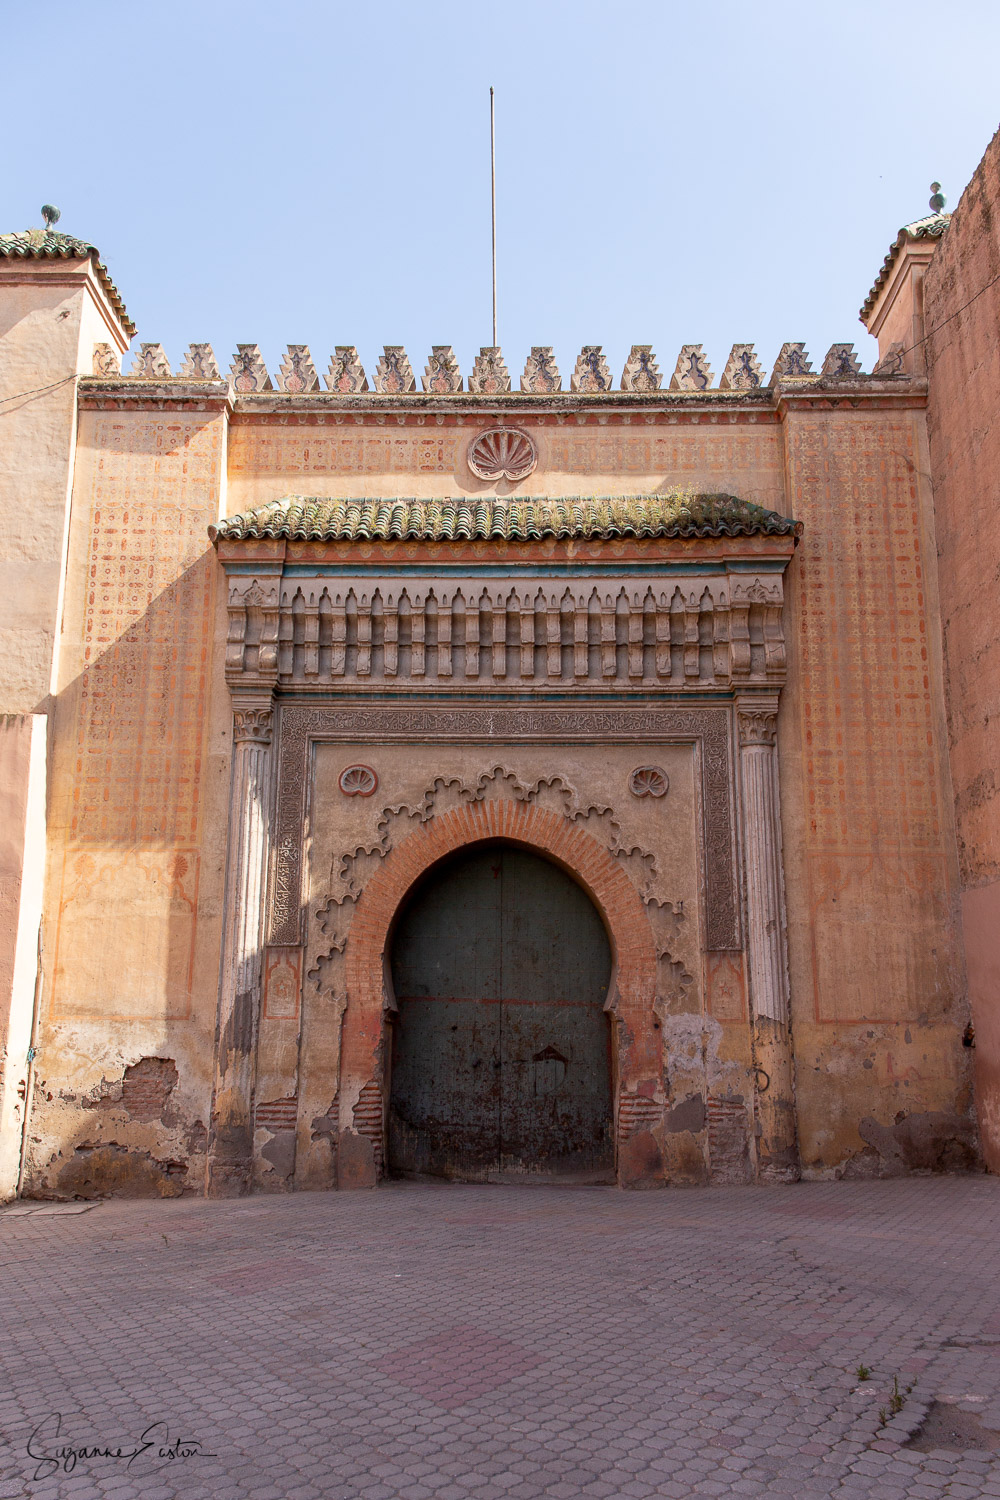 The gateway to El Badi Palace in Marrakech